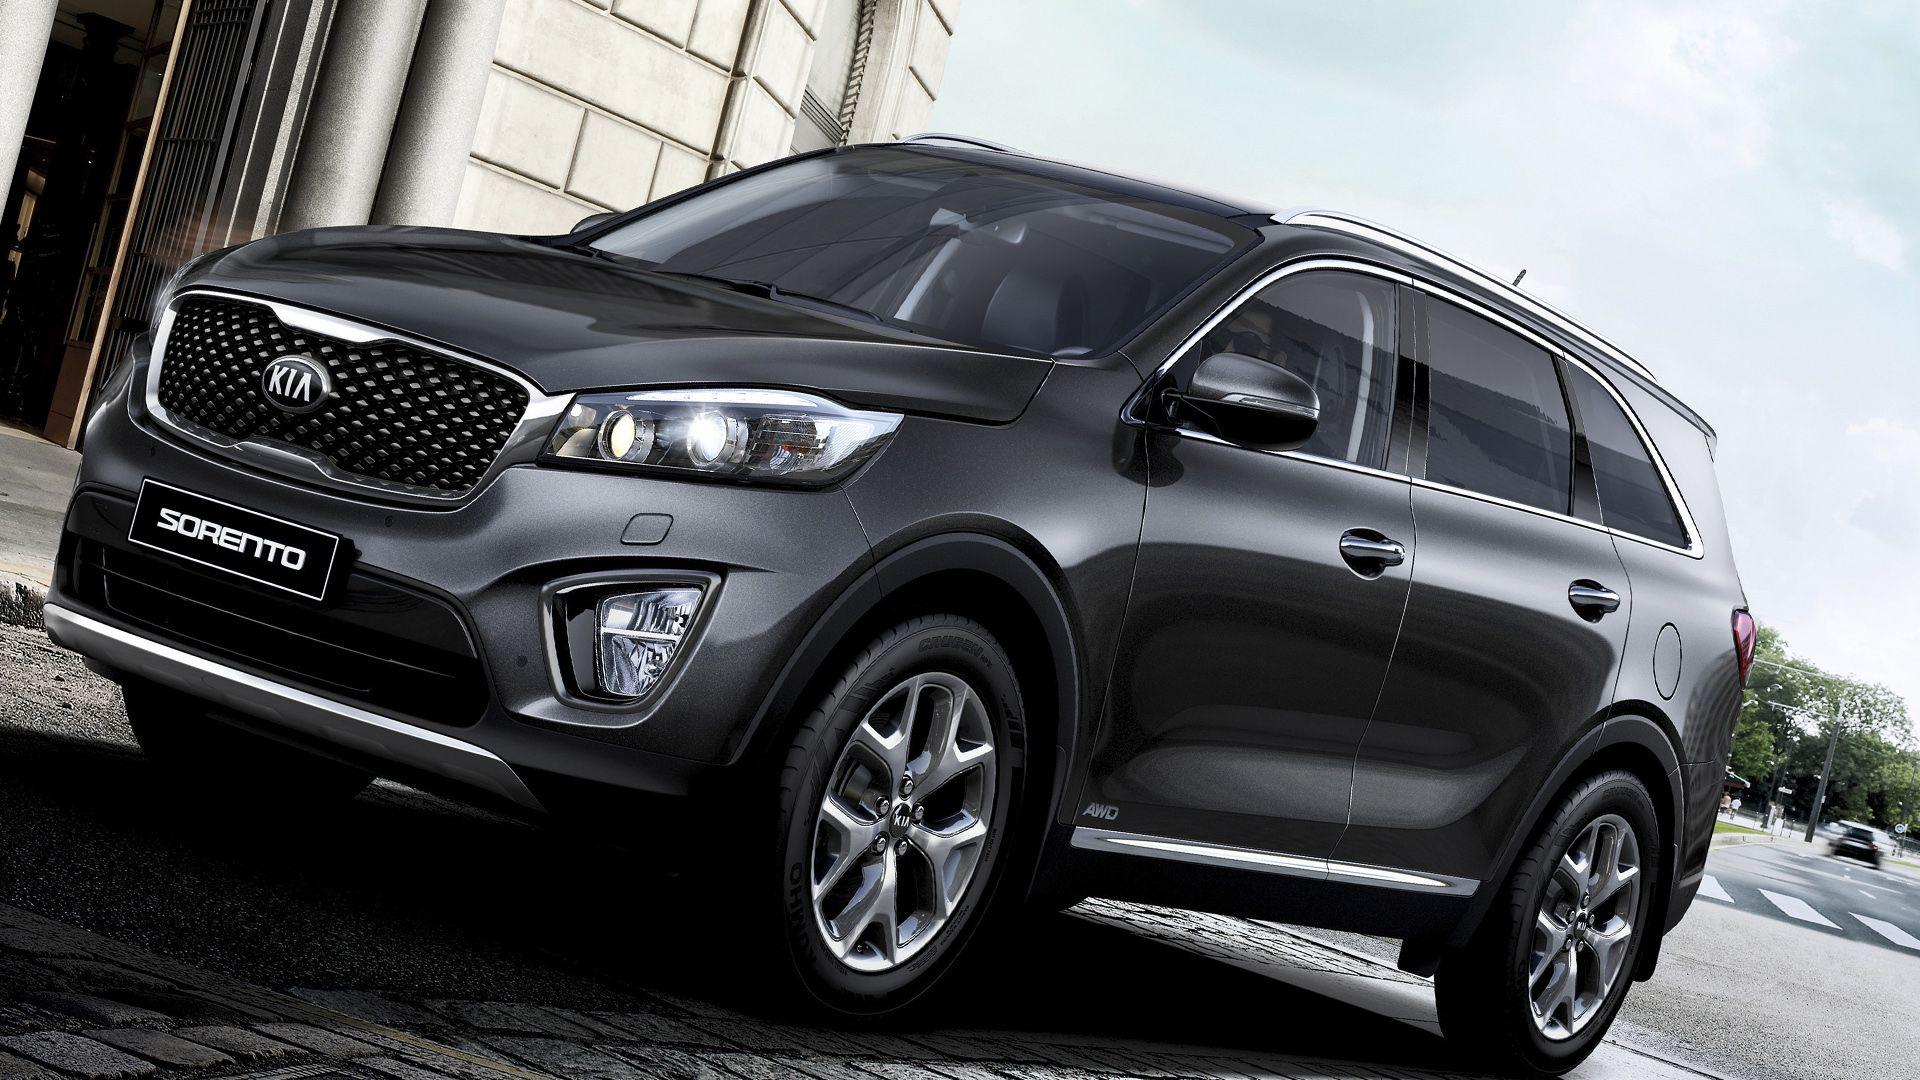 2018 Kia Sorento Wallpapers